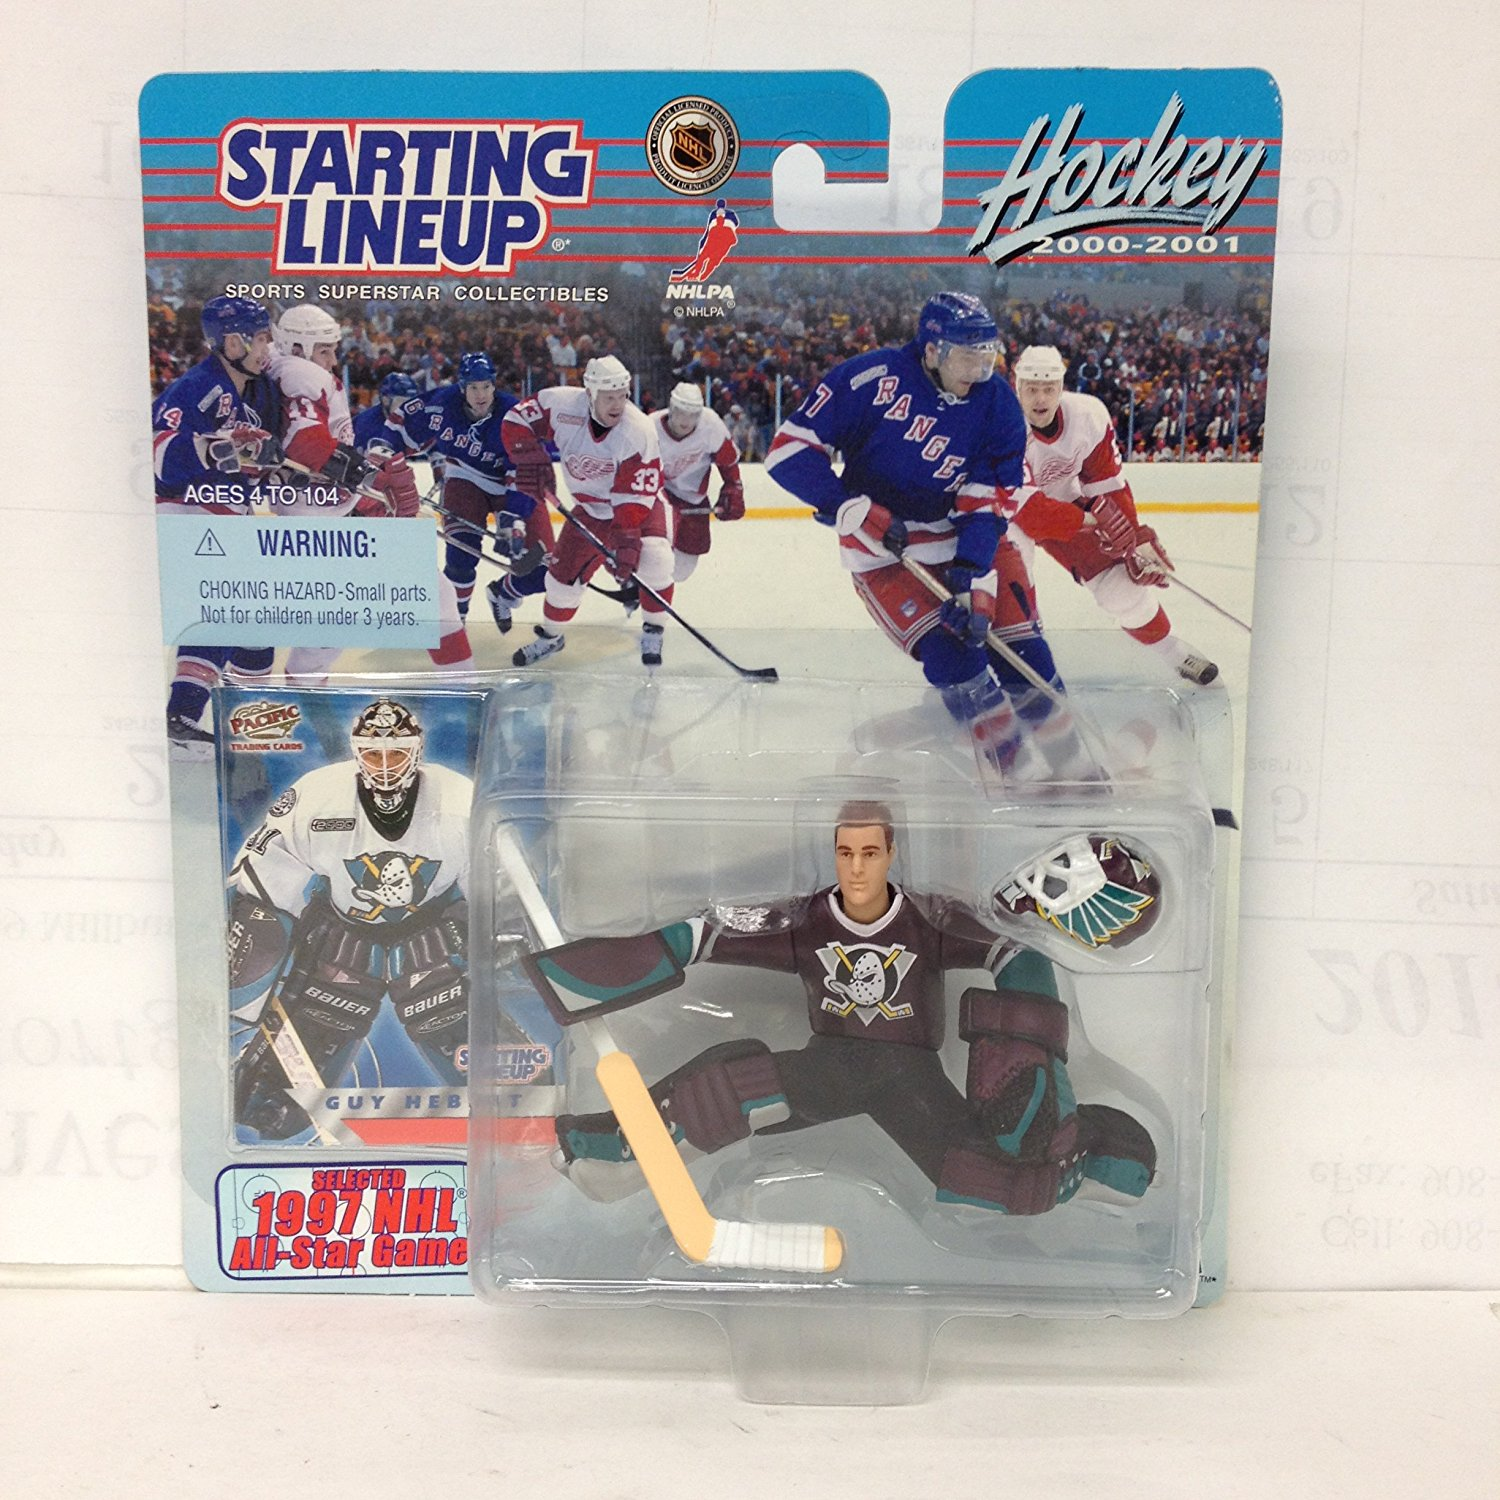 Starting Line Up NHL 2000-2001 Guy Hebert with 1997 Card, Hockey startingline up By Hasbro by